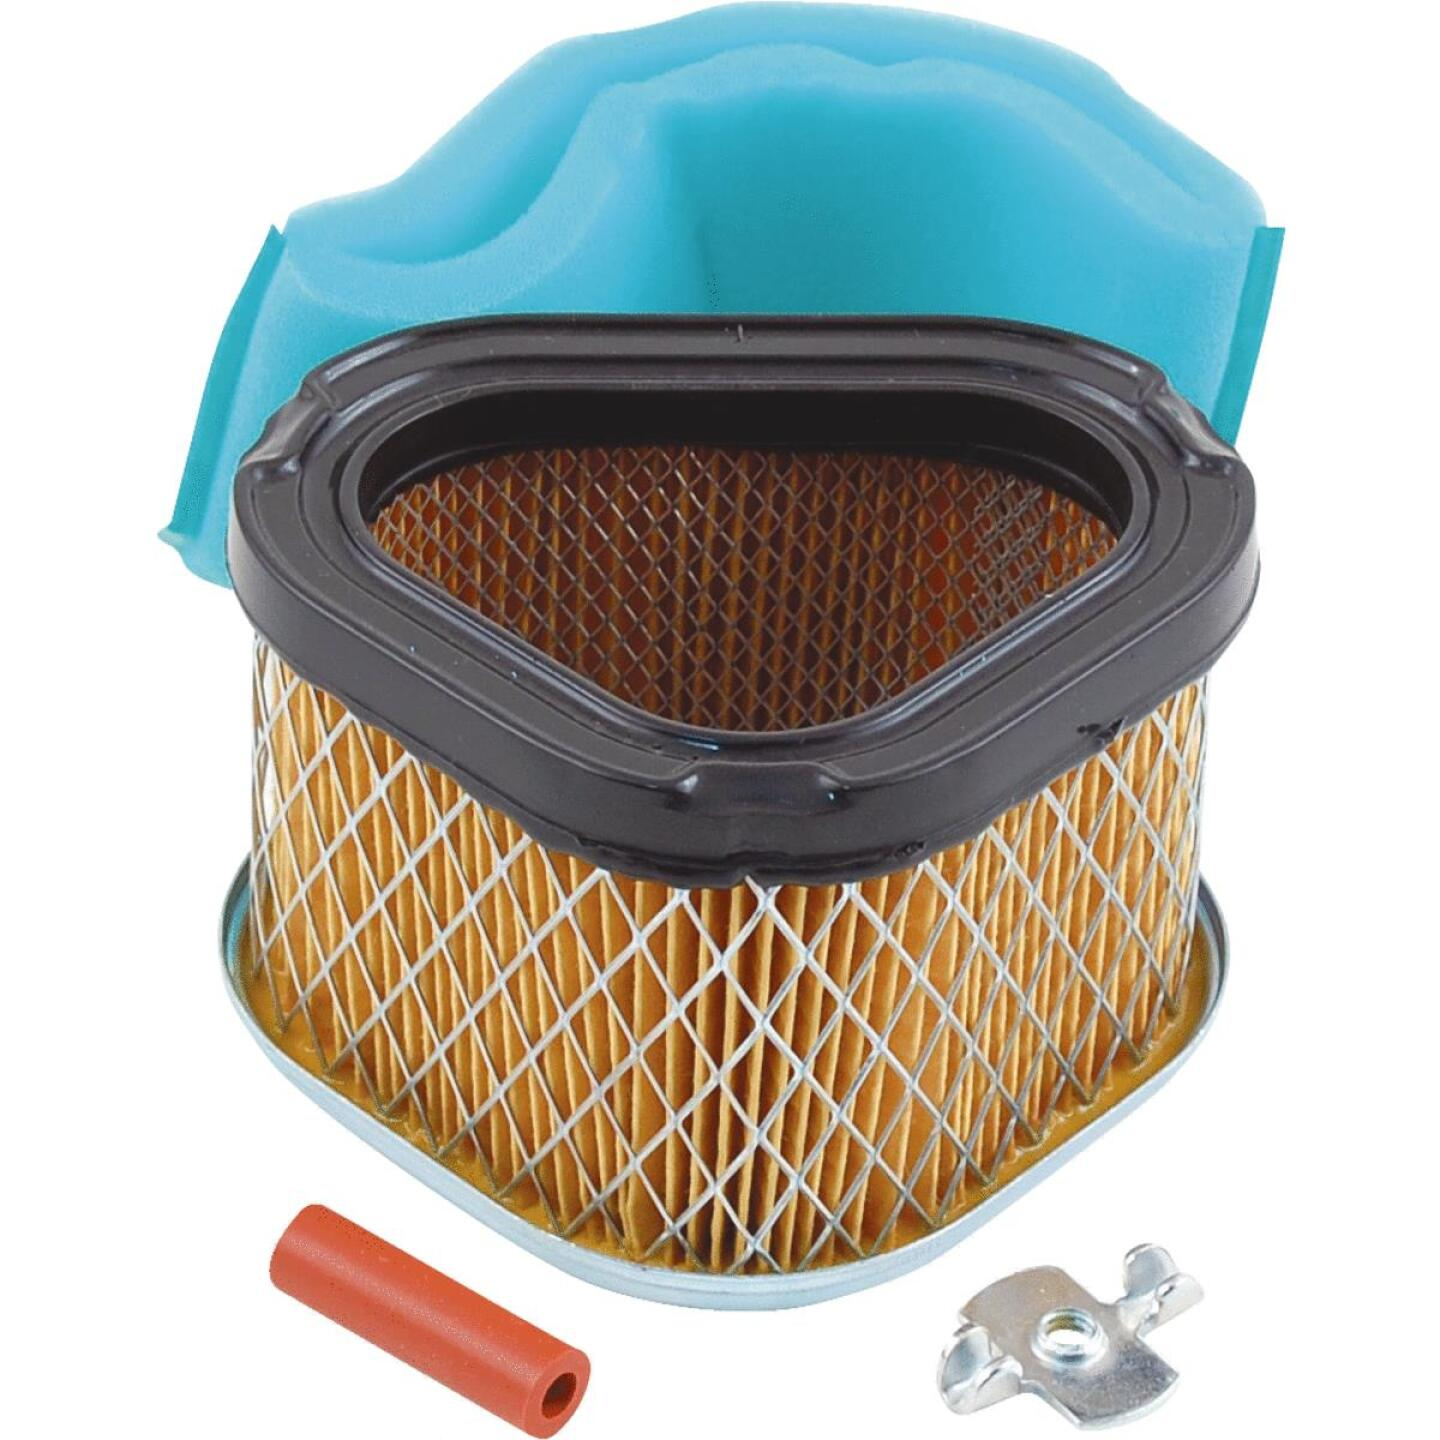 Arnold Kohler 11 To 16 HP Paper Engine Air Filter with Pre-Cleaner Image 1